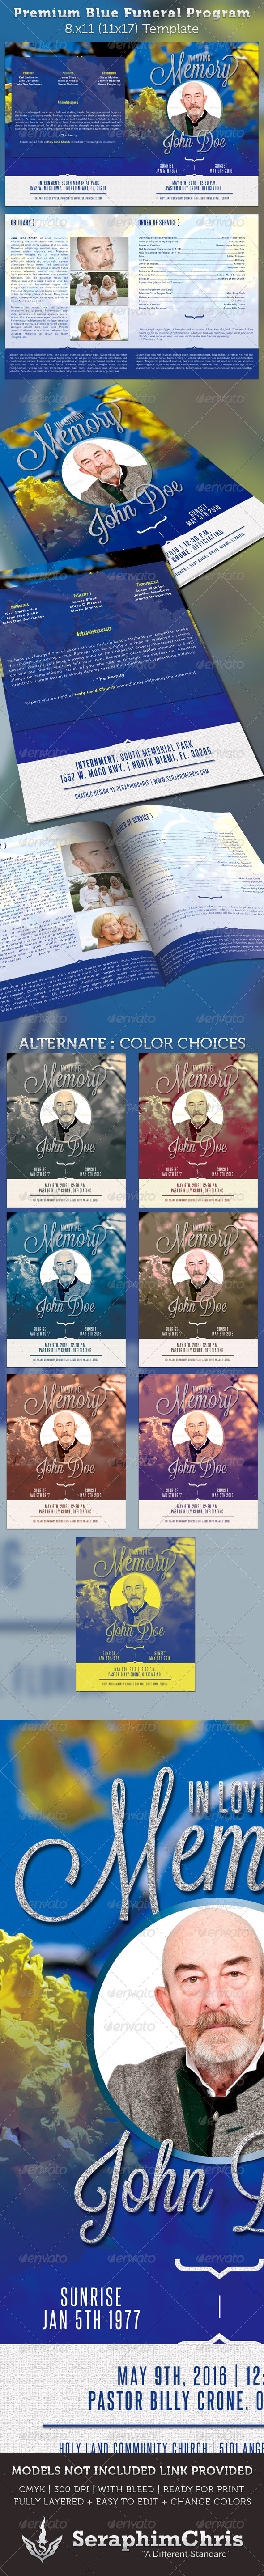 Premium Blue Funeral Program Template - Church Flyers